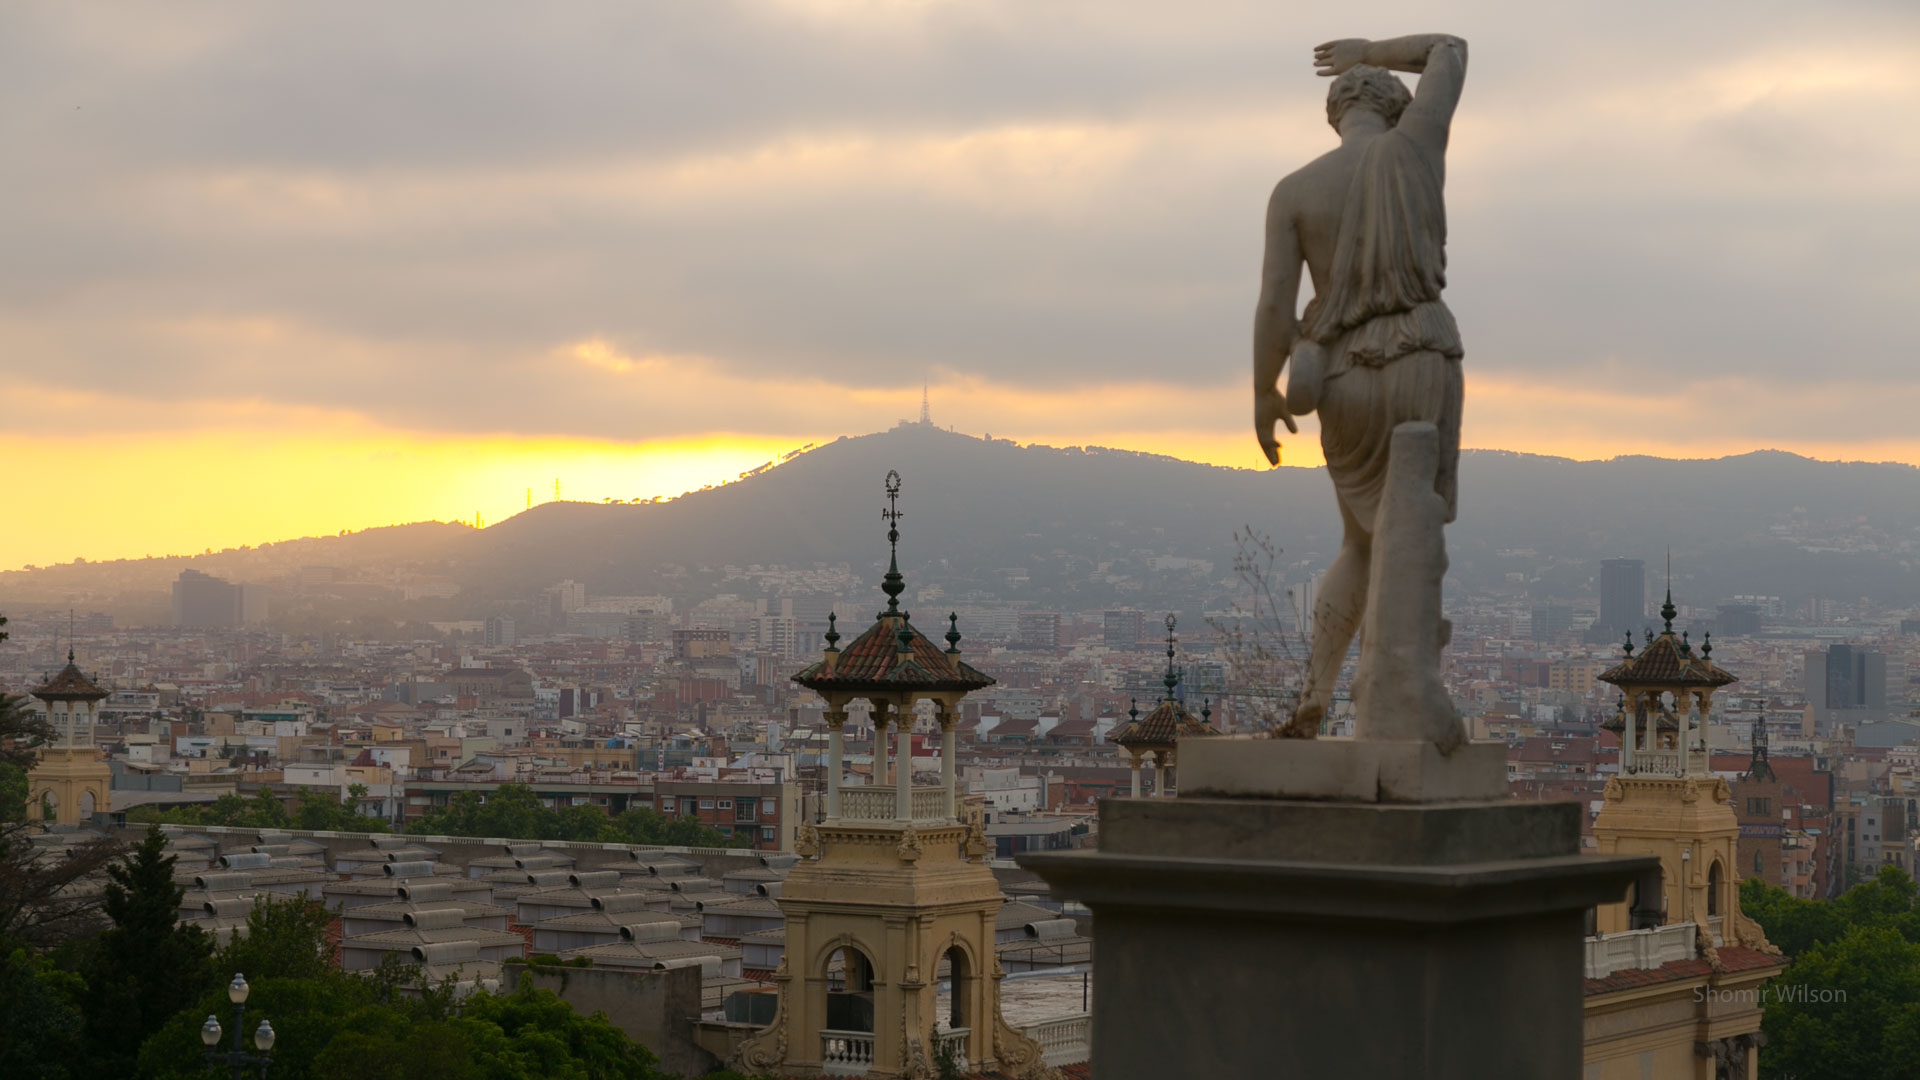 Catalan city skyline from a hillside, with a statue of a person at right, and sunset in the sky